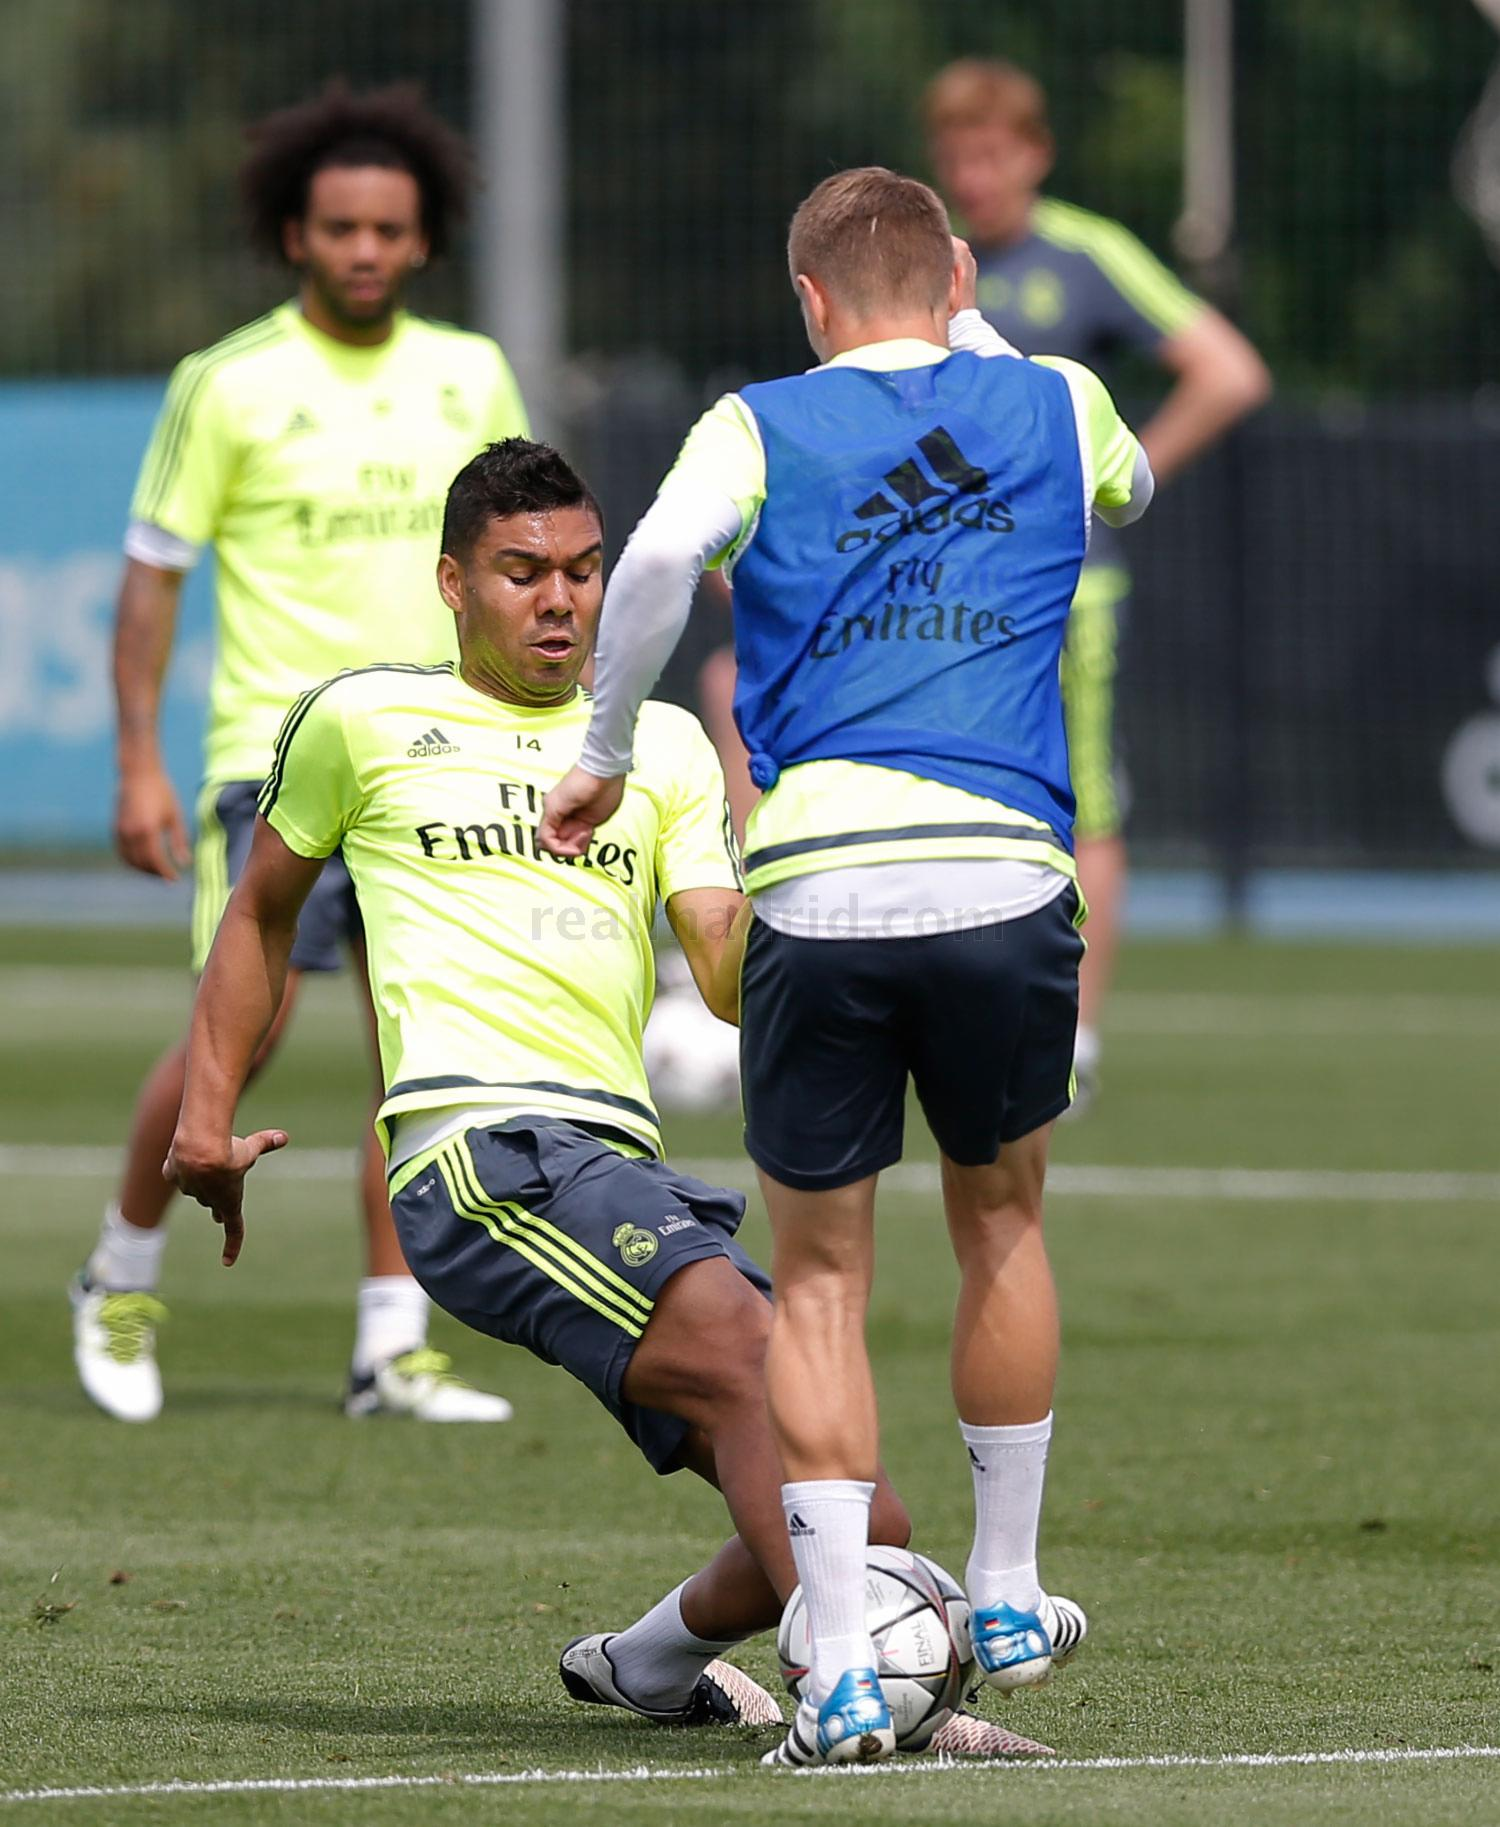 Real Madrid - Entrenamiento del Real Madrid - 17-05-2016